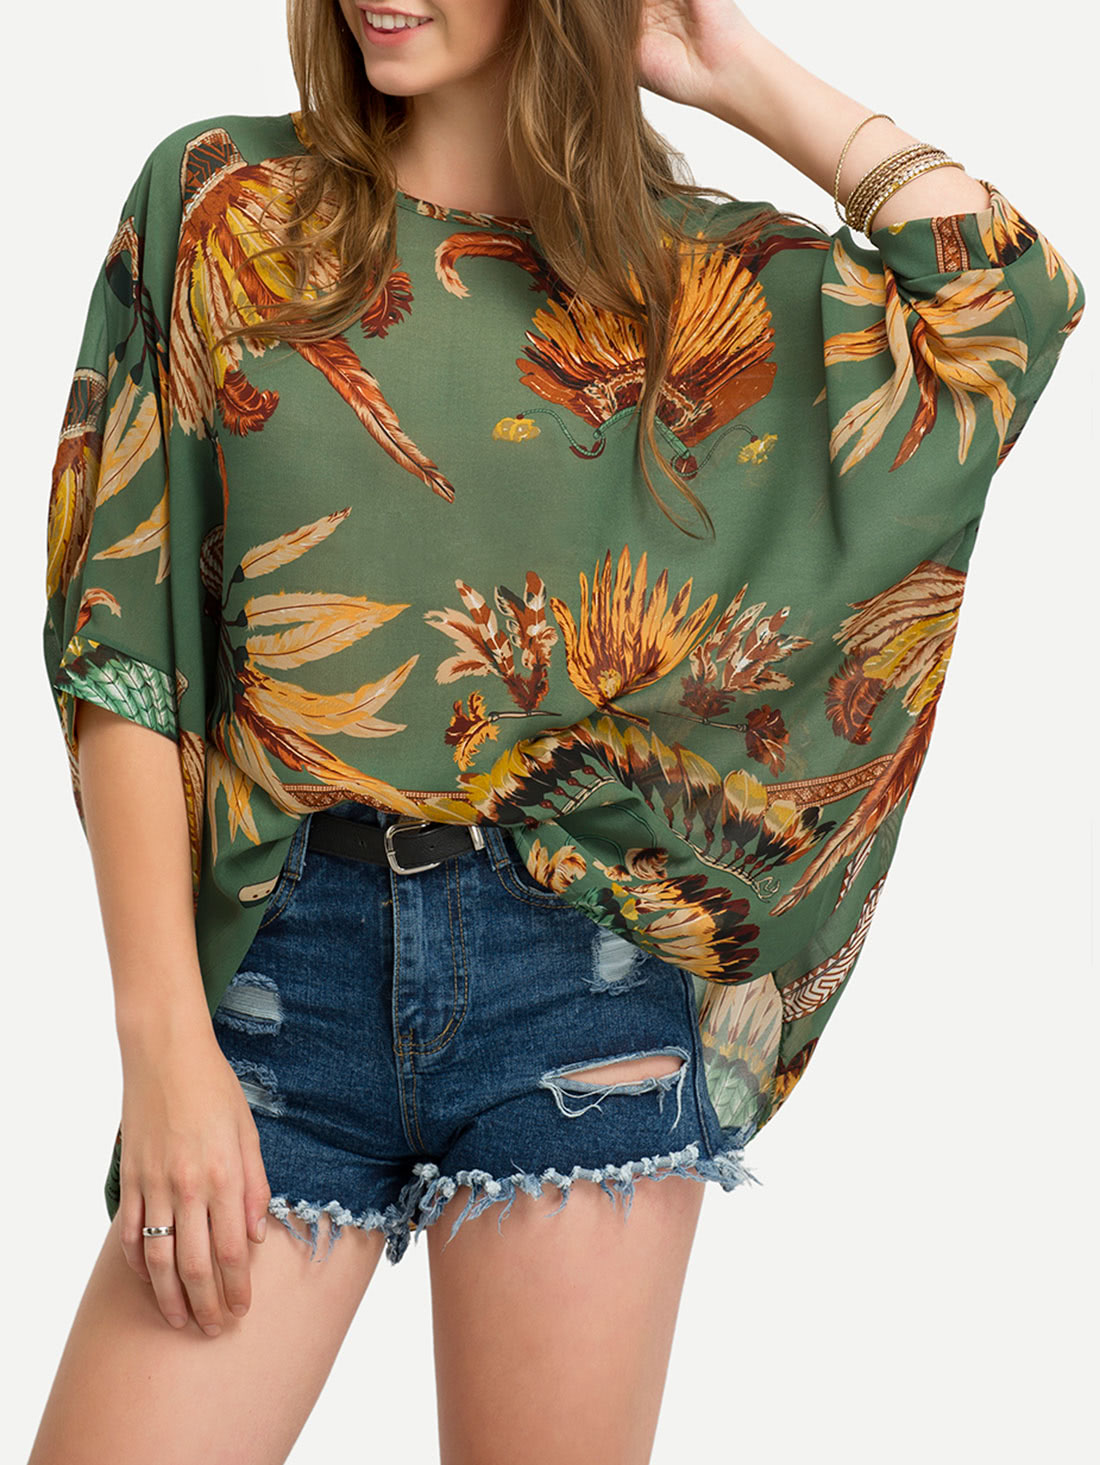 Leaves Print Chiffon ShirtLeaves Print Chiffon Shirt<br><br>color: Green<br>size: one-size